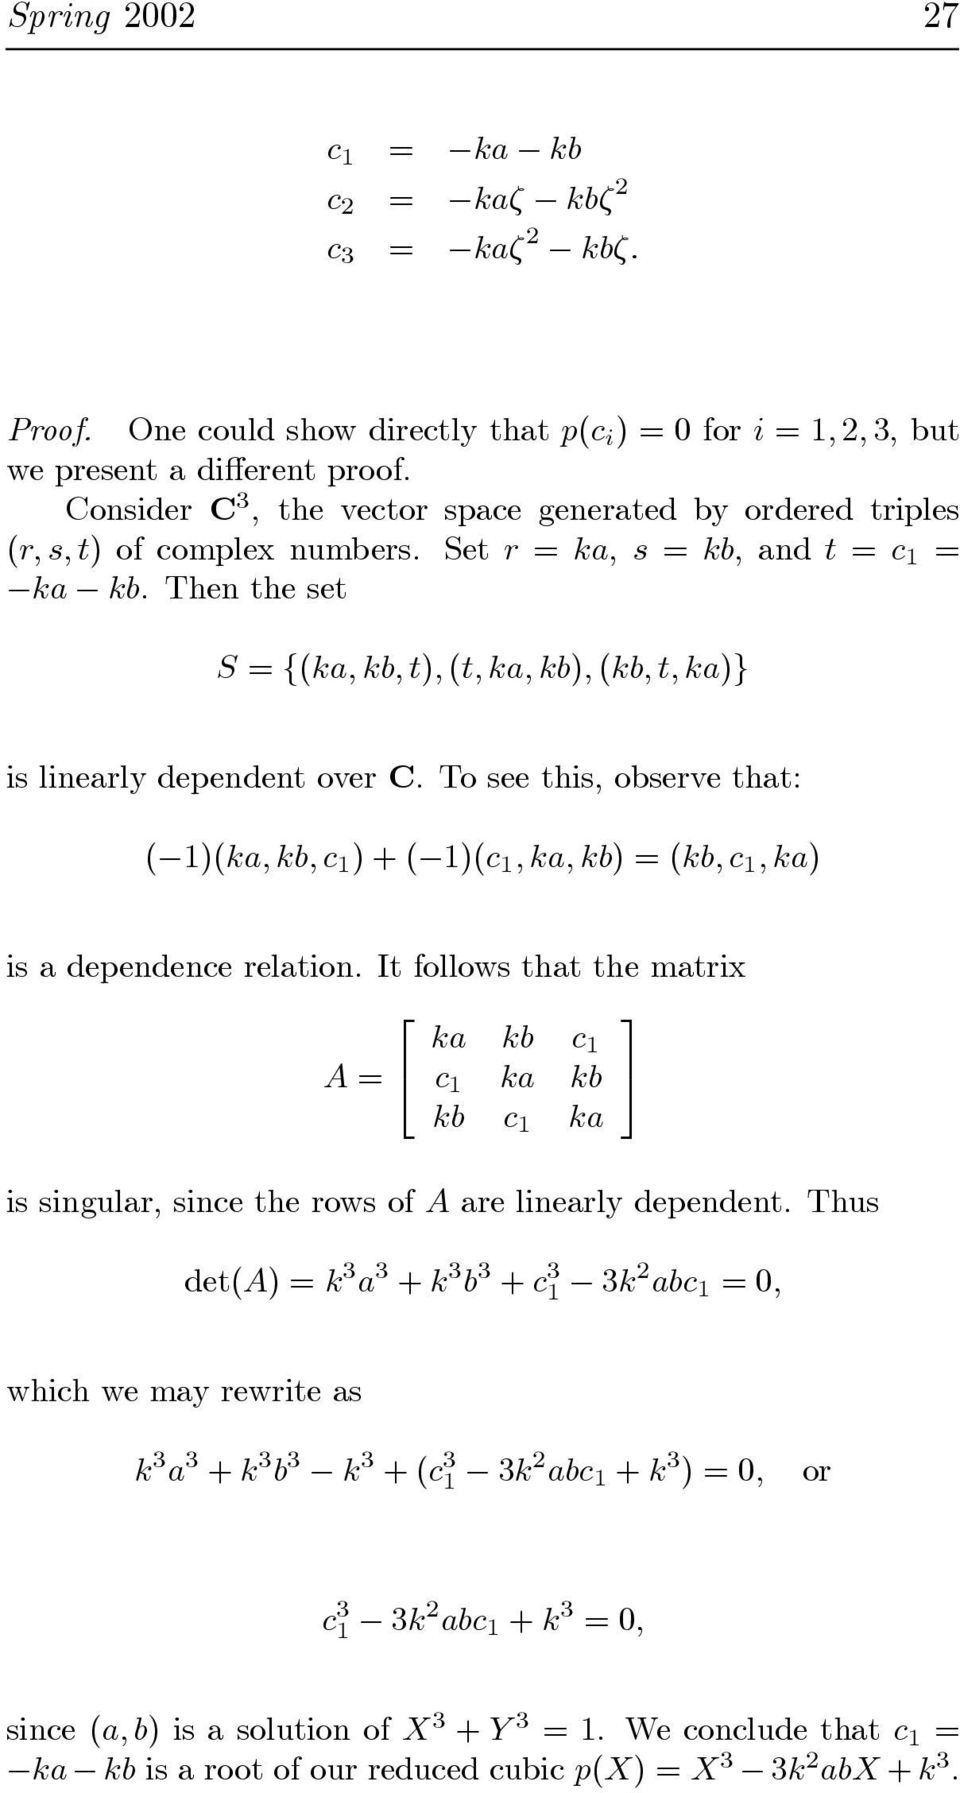 Then the set S = {(ka, kb, t), (t, ka, kb), (kb,t,ka)} is linearly dependent over C. To see this,observe that: ( 1)(ka, kb, c 1 )+( 1)(c 1,ka,kb)=(kb, c 1,ka) is a dependence relation.